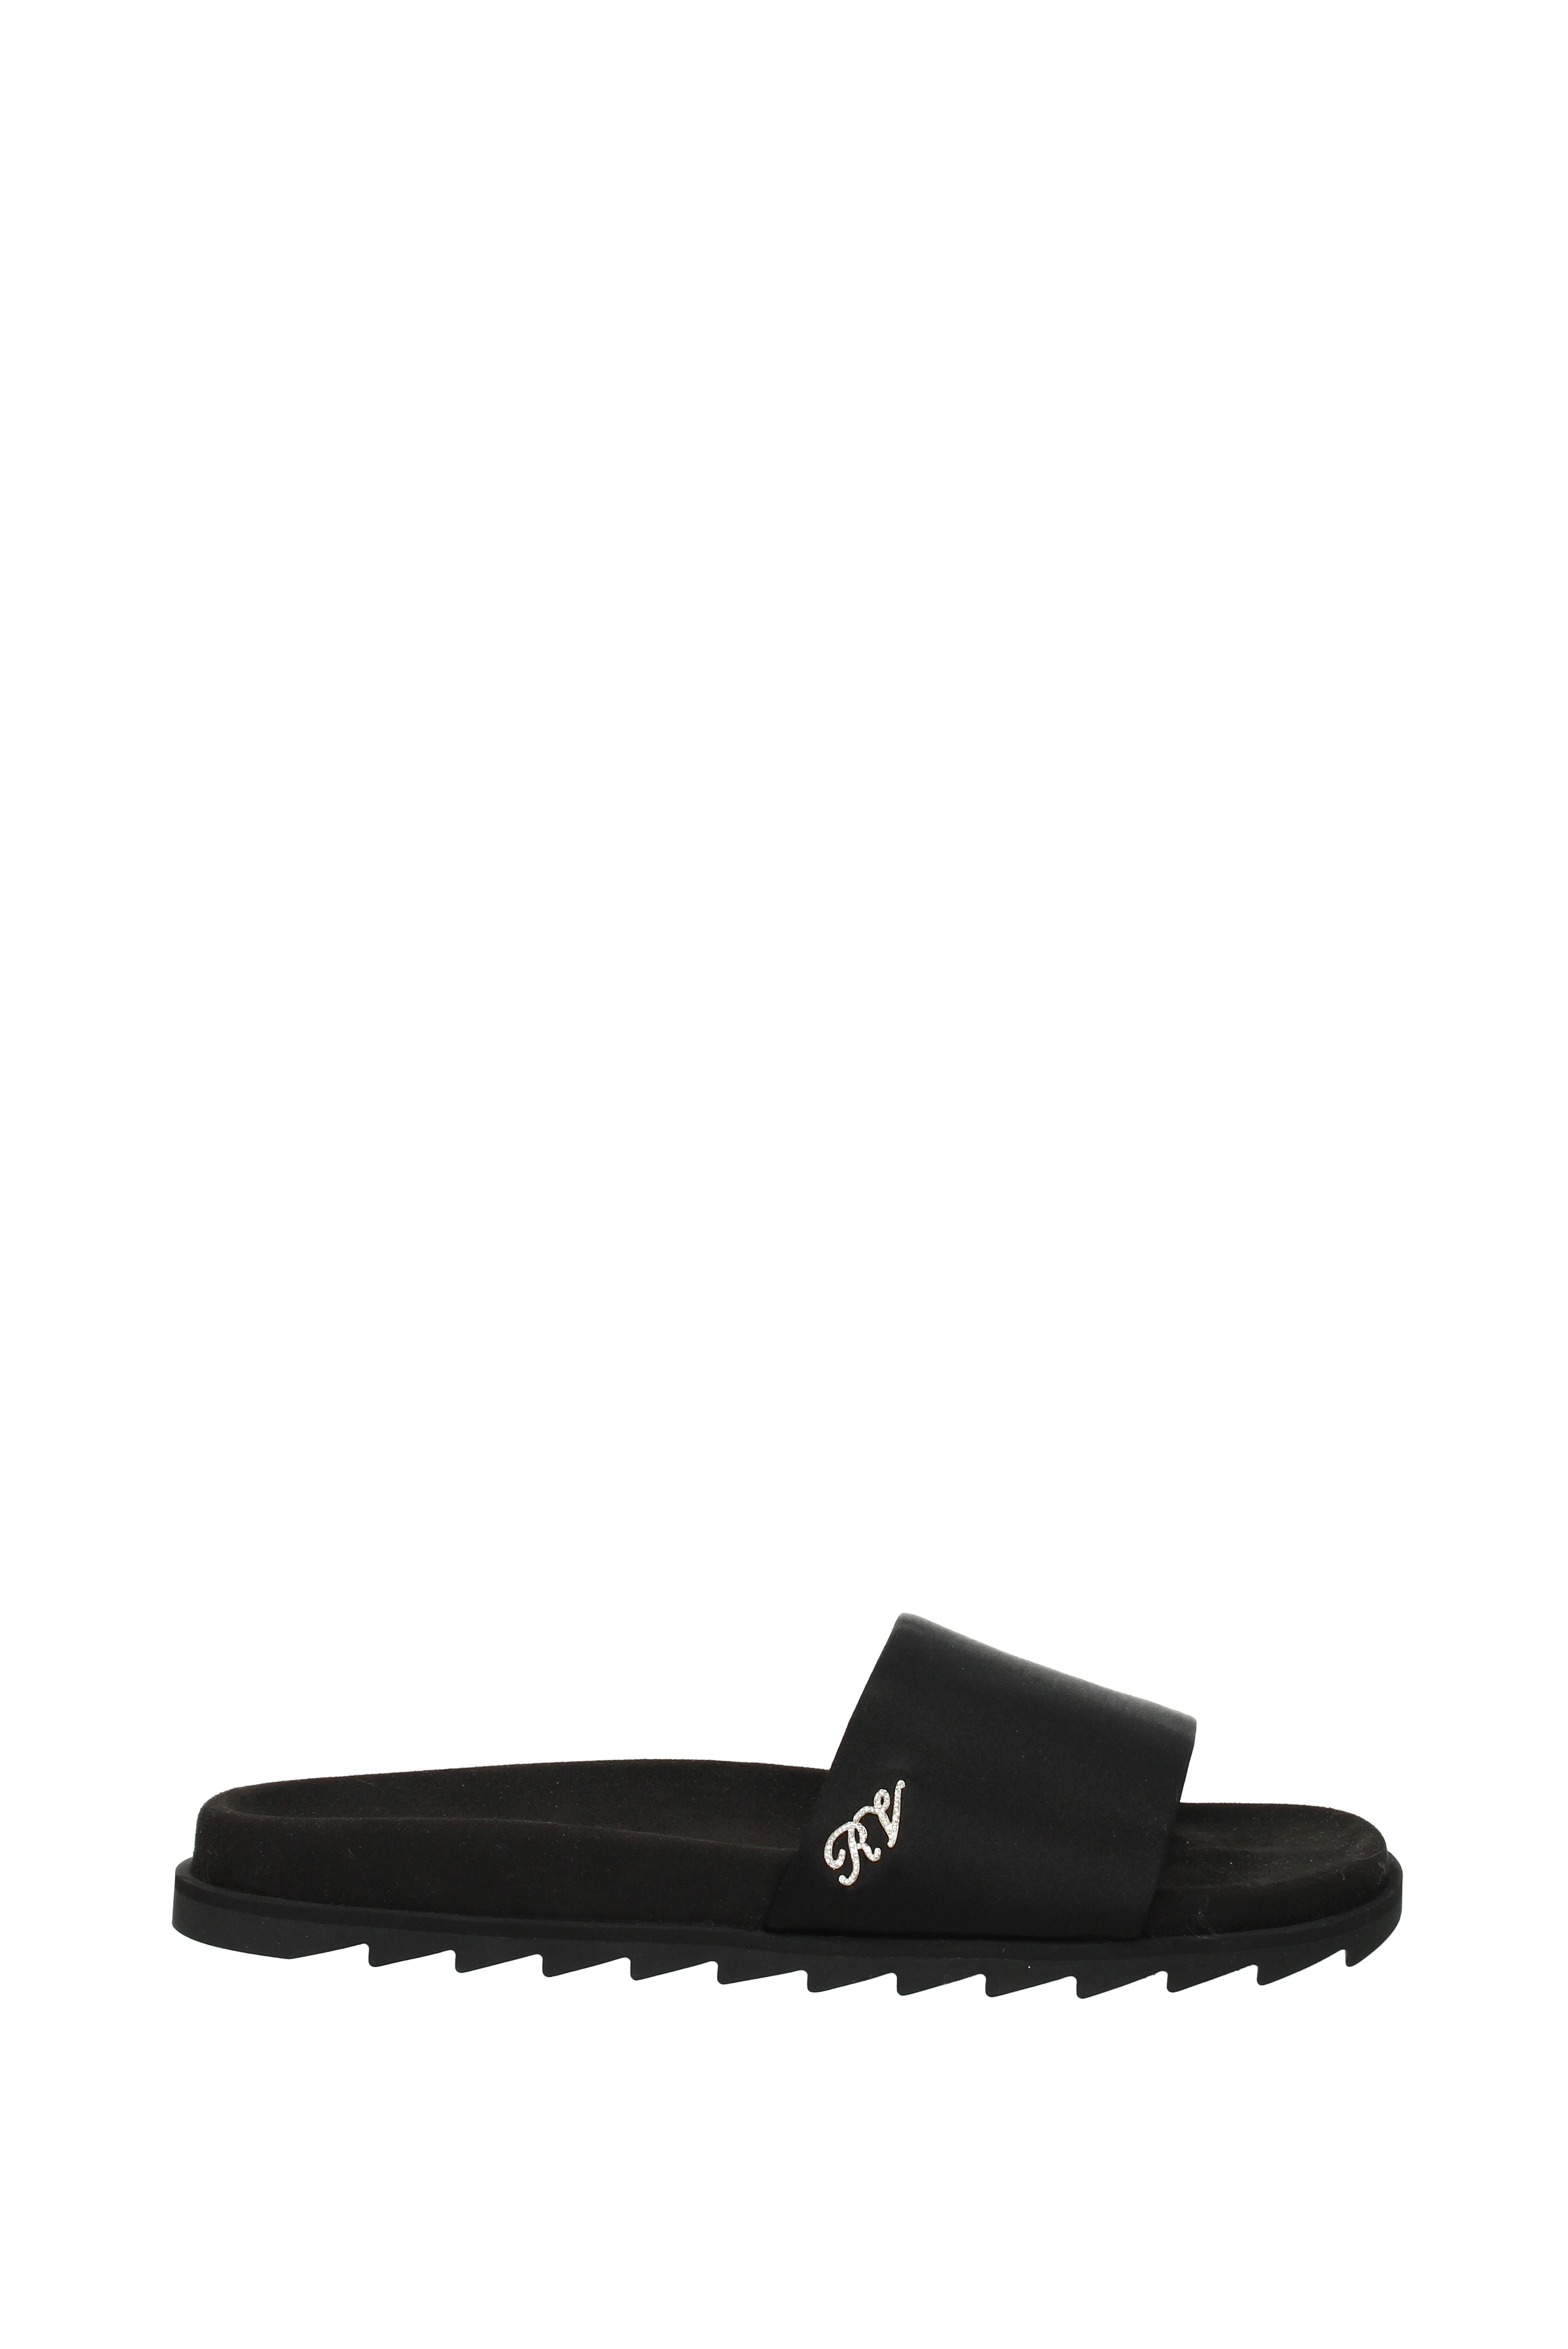 Slippers and Fabric clogs Roger Vivier Damens - Fabric and  (RVW45821490RS0) 1d6faf